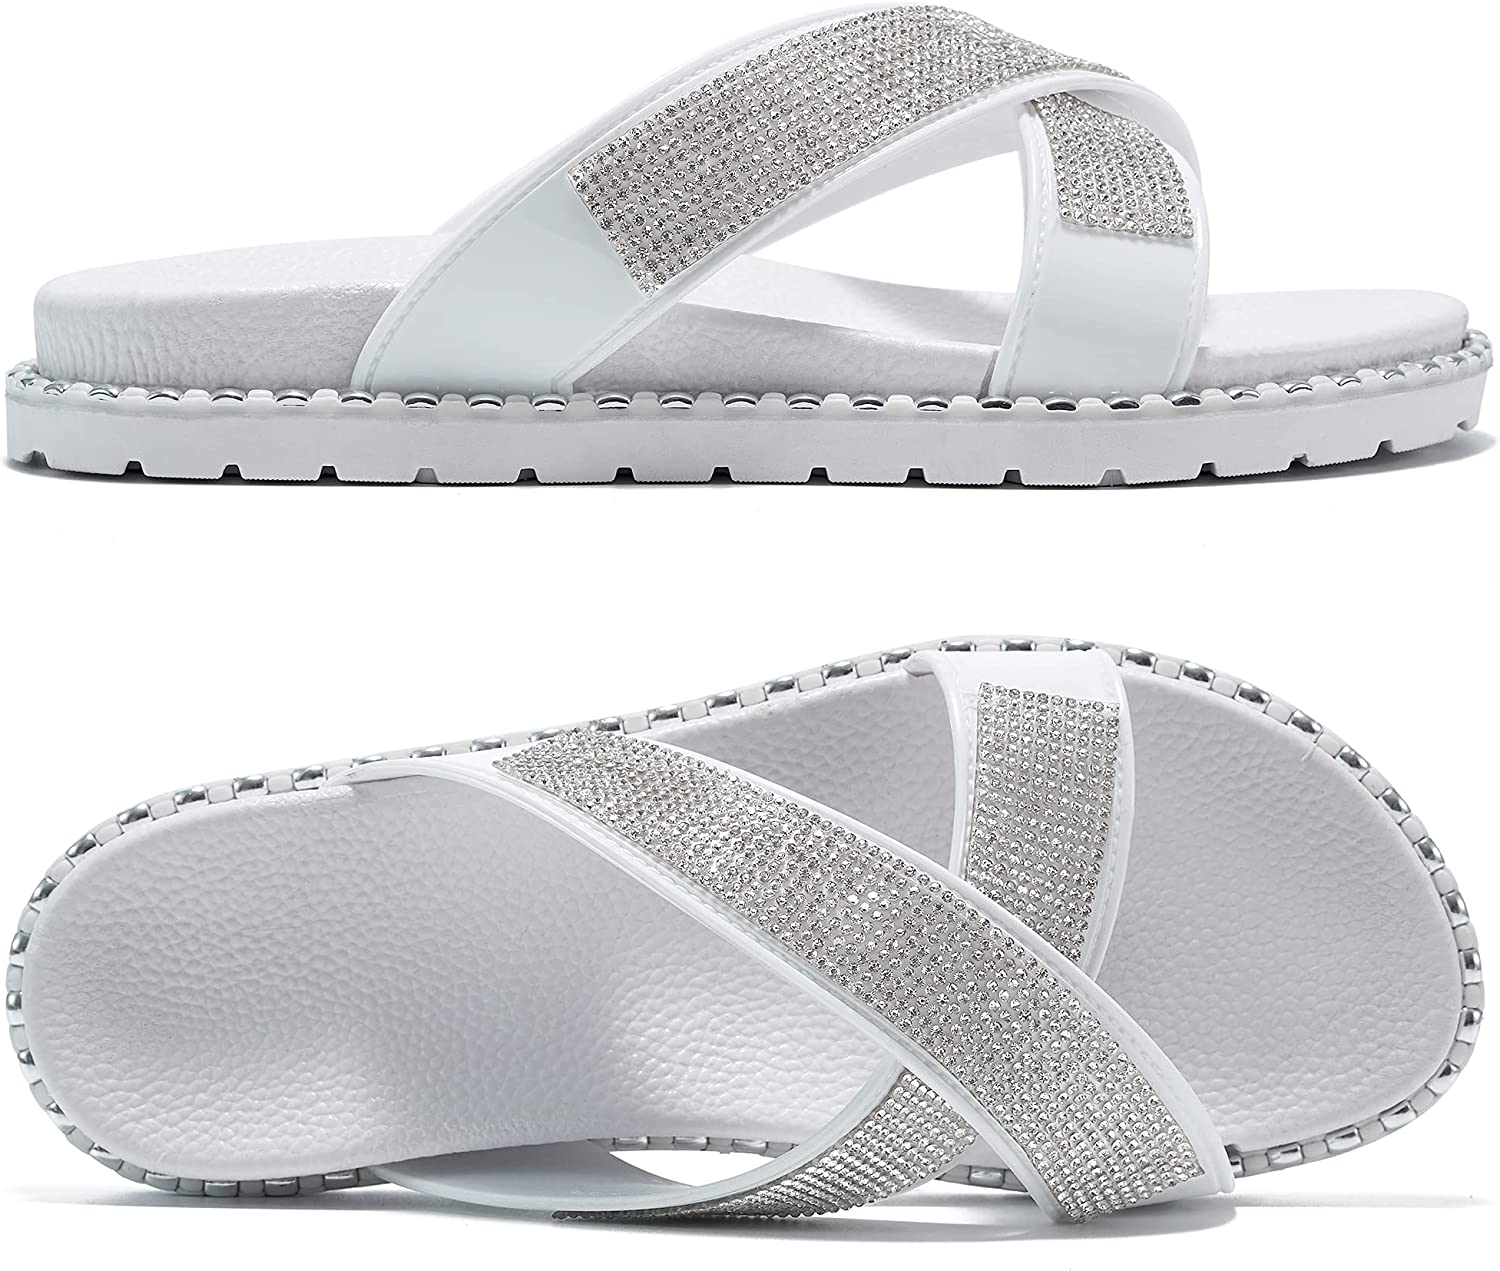 Womens Shoes Comfort Slides Sandals with Arch Support Casual Criss Cross Rhinestone Glitter House Slippers Open Toe Cozy Indoor Outdoor Platform Flats